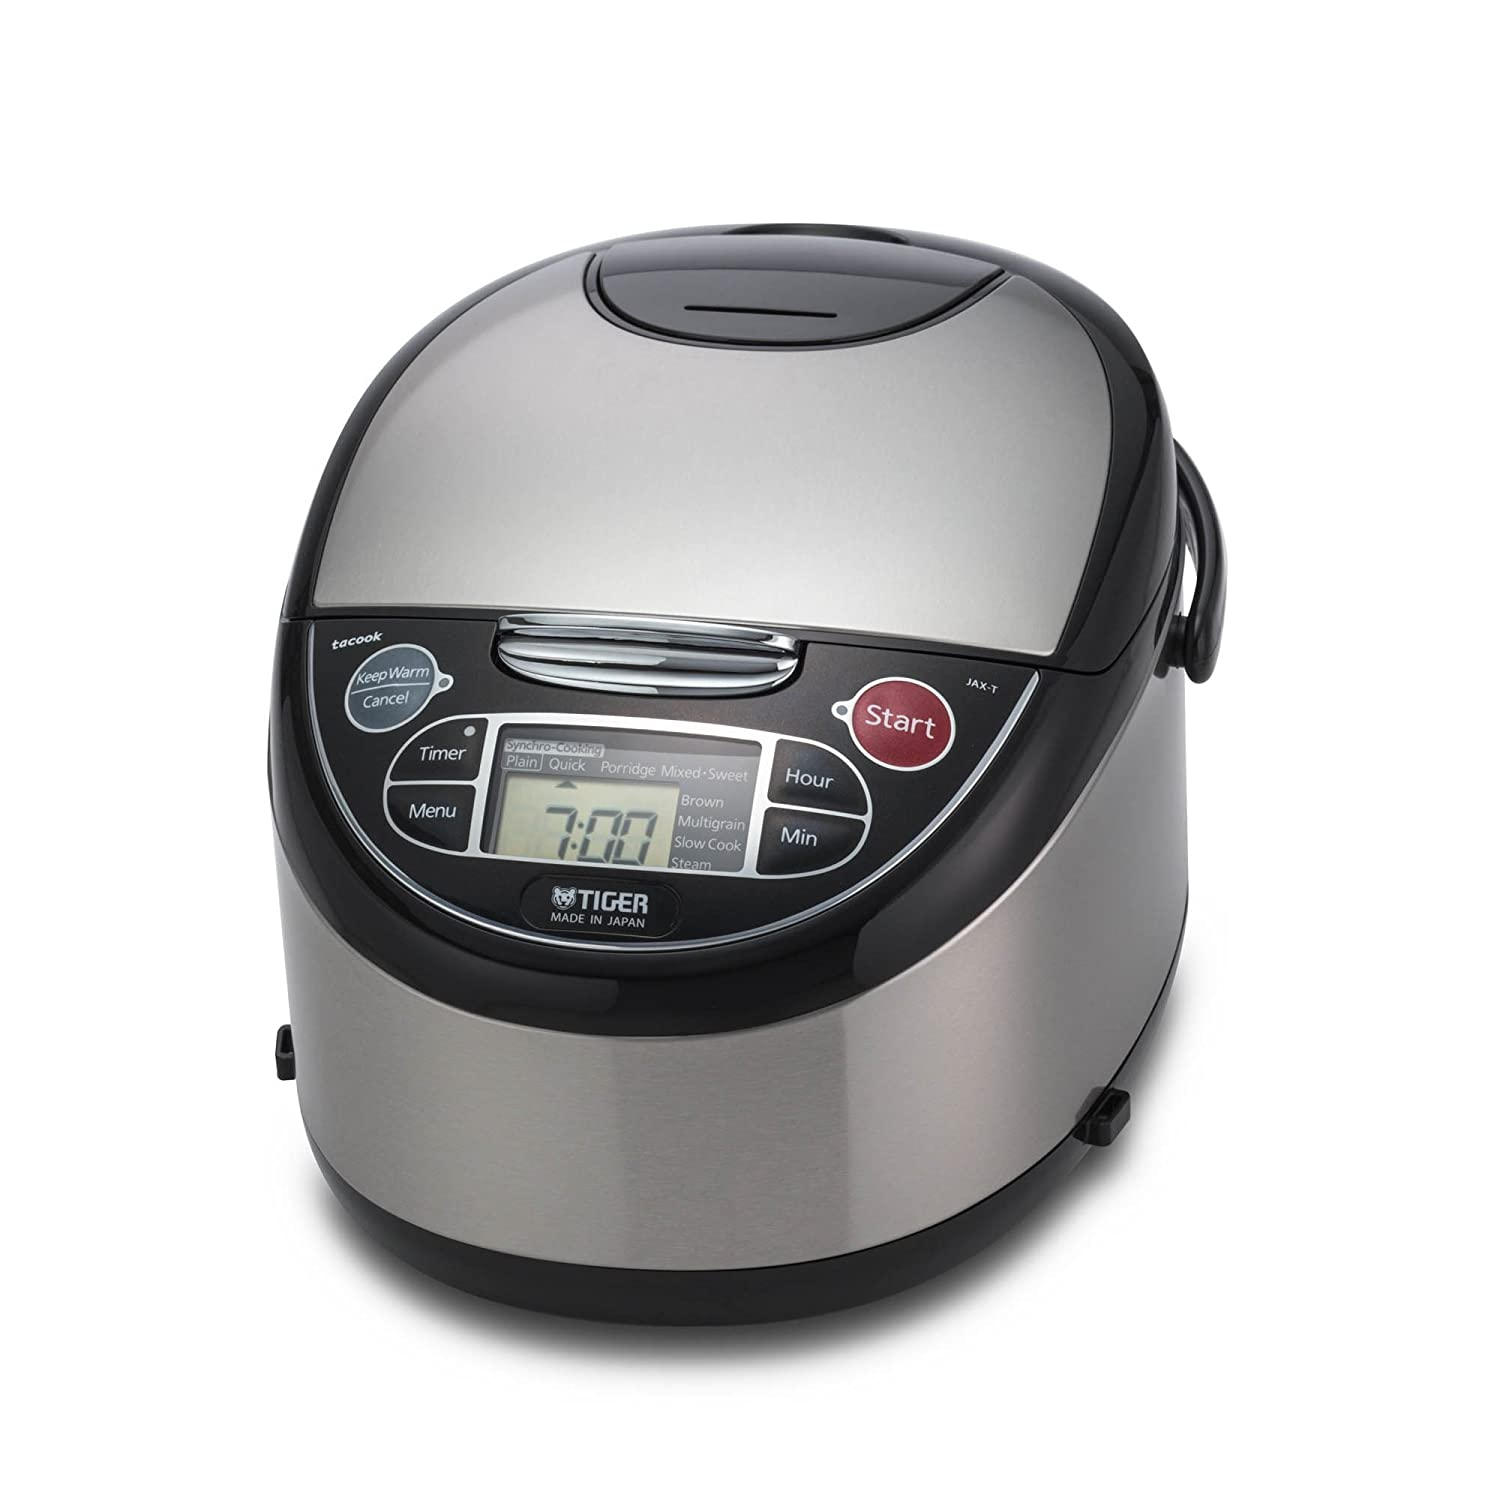 Do You Know How To Get The Best Stainless Steel Rice Cooker? 3